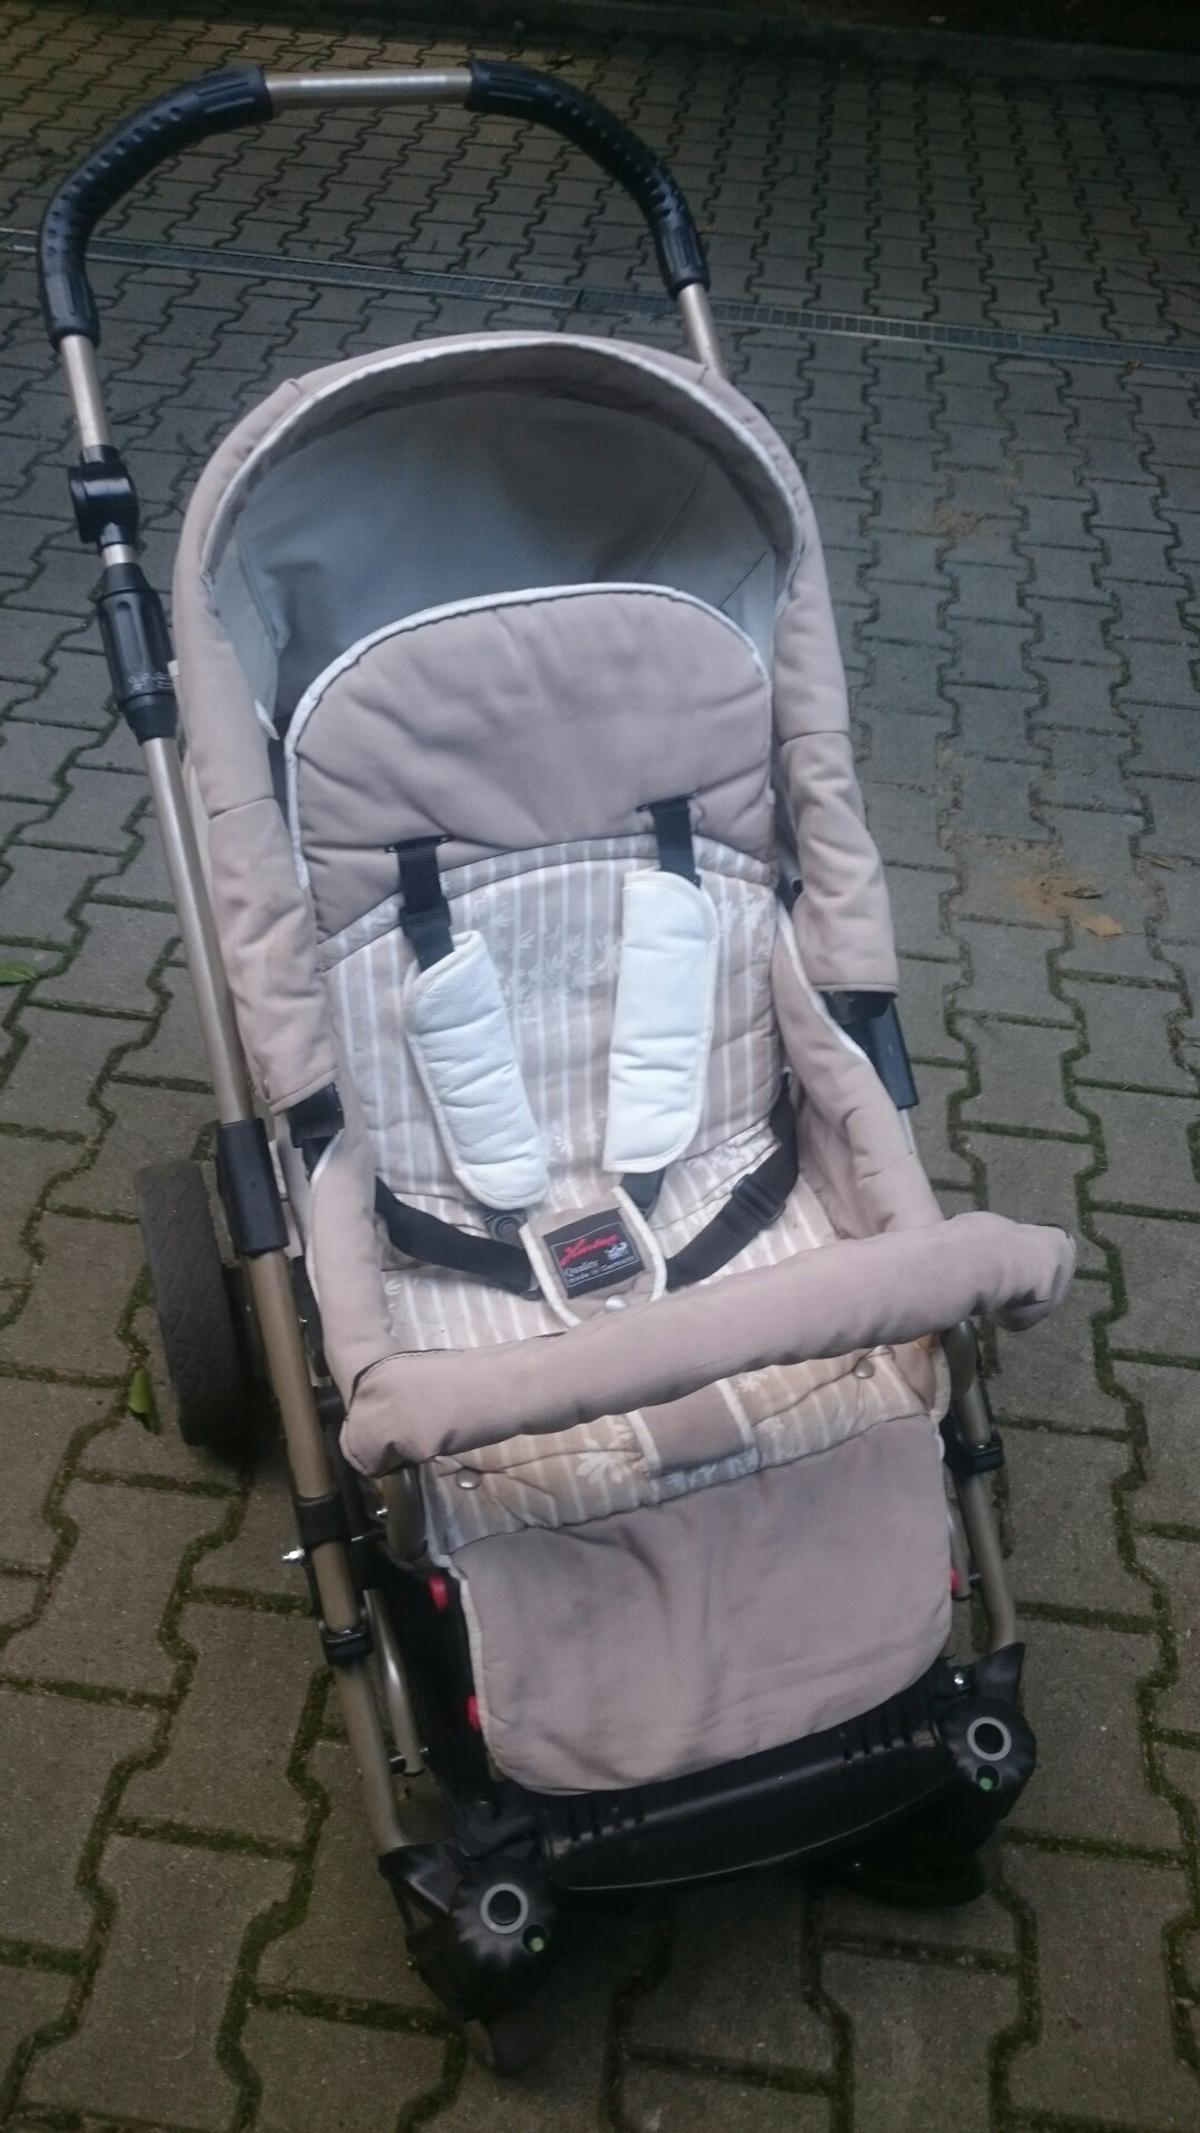 Hartan Kinderwagen Alte Modelle Hartan R1 Kinderwagen In 22547 Hamburg For 70 00 For Sale